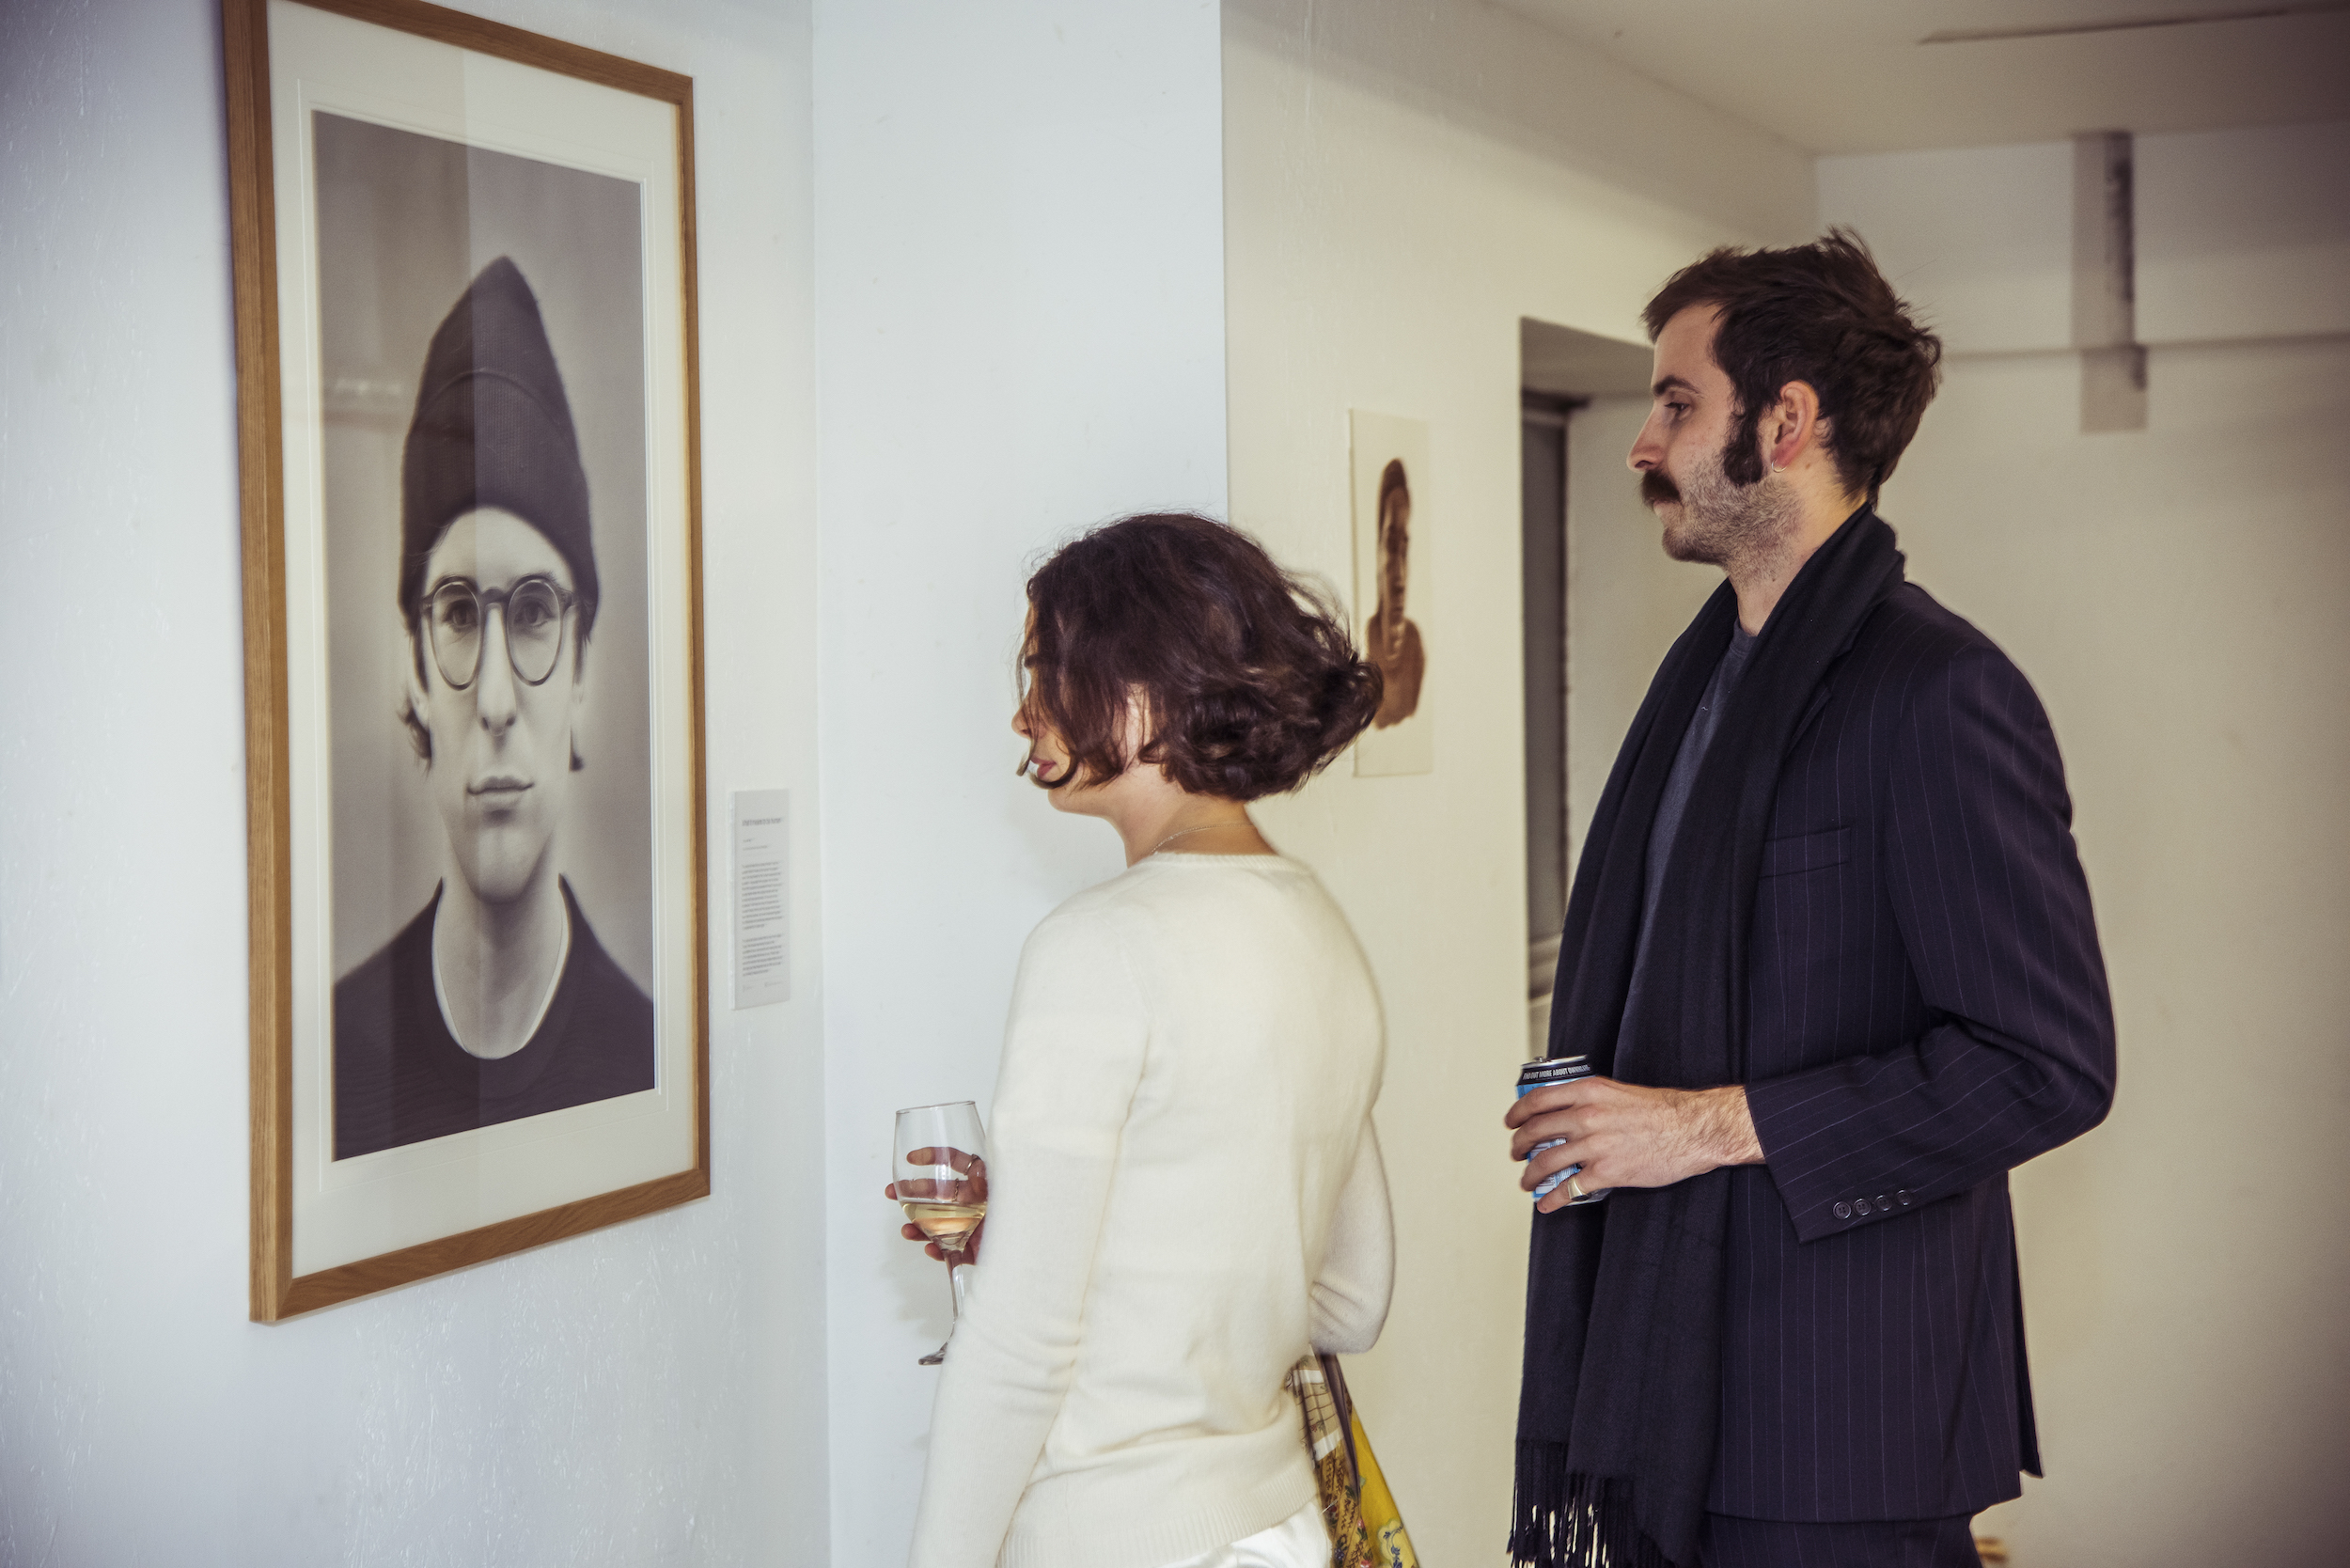 Two people looking at a photograph hanging on the wall